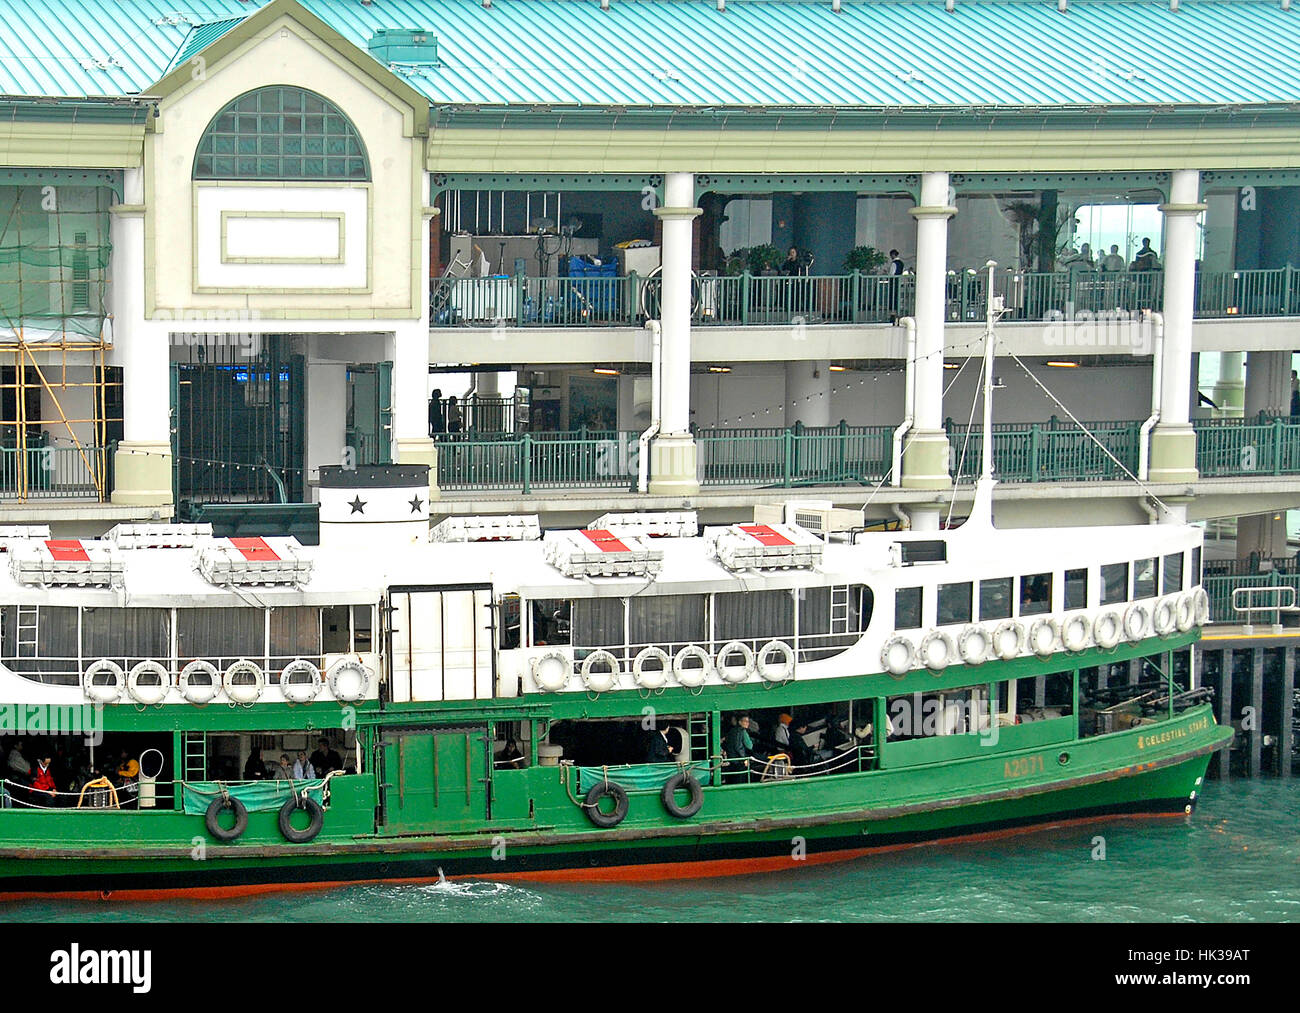 Celestial Star ferry, currently the oldest vessel in service, at pier Victoria bay, Hong Kong, China - Stock Image